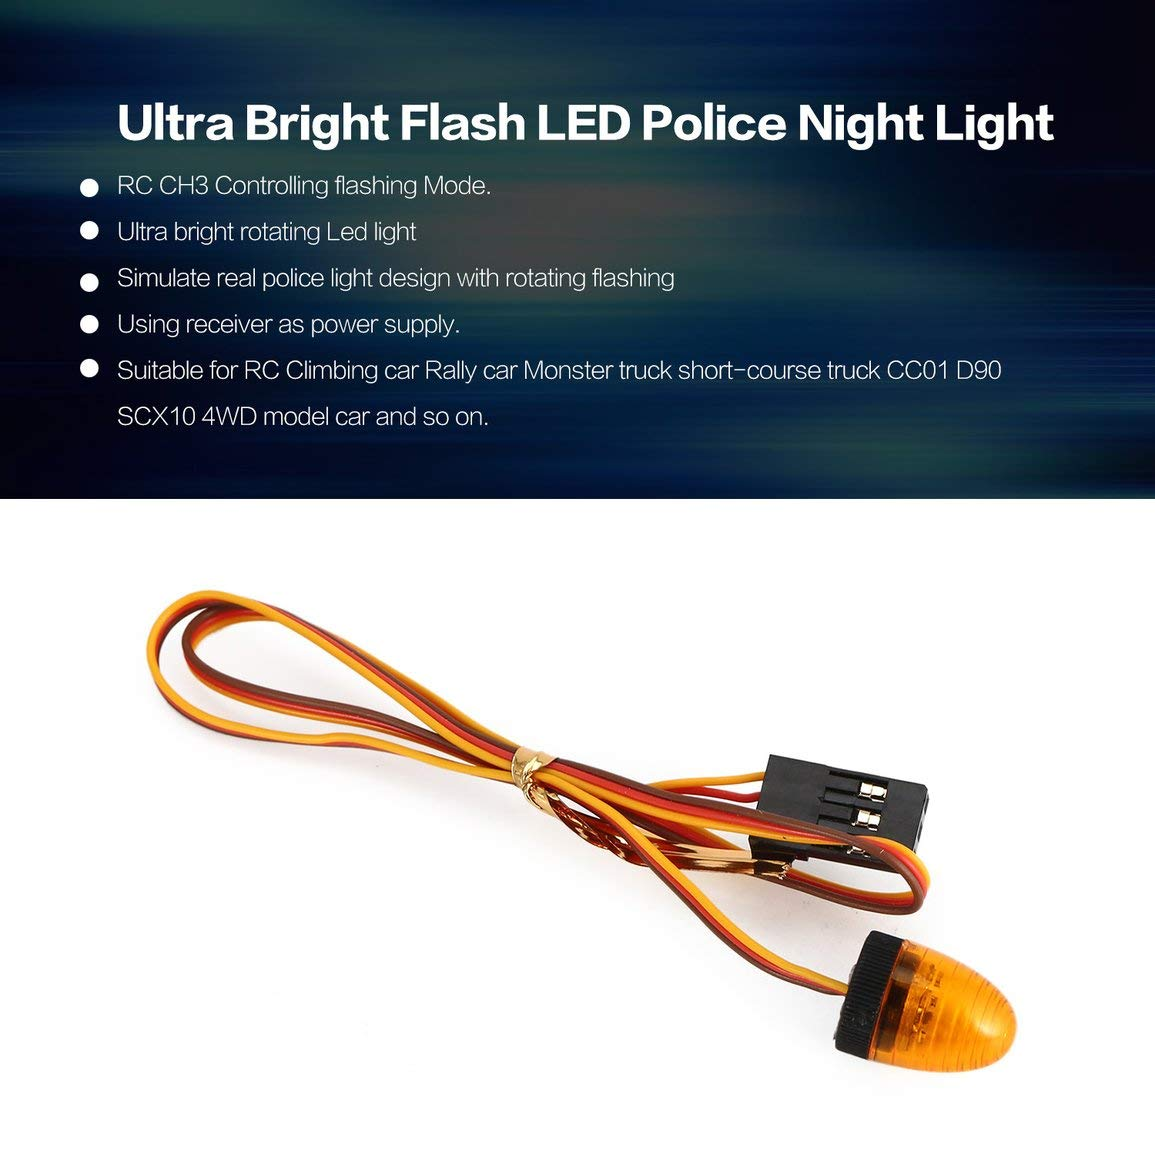 Fantasyworld Austar Multi-Fonction Ultra Bright LED Rotating Police Clignotant Night Lights Lampe pour Voiture RC HSP Tamiya CC01 axiale SCX10